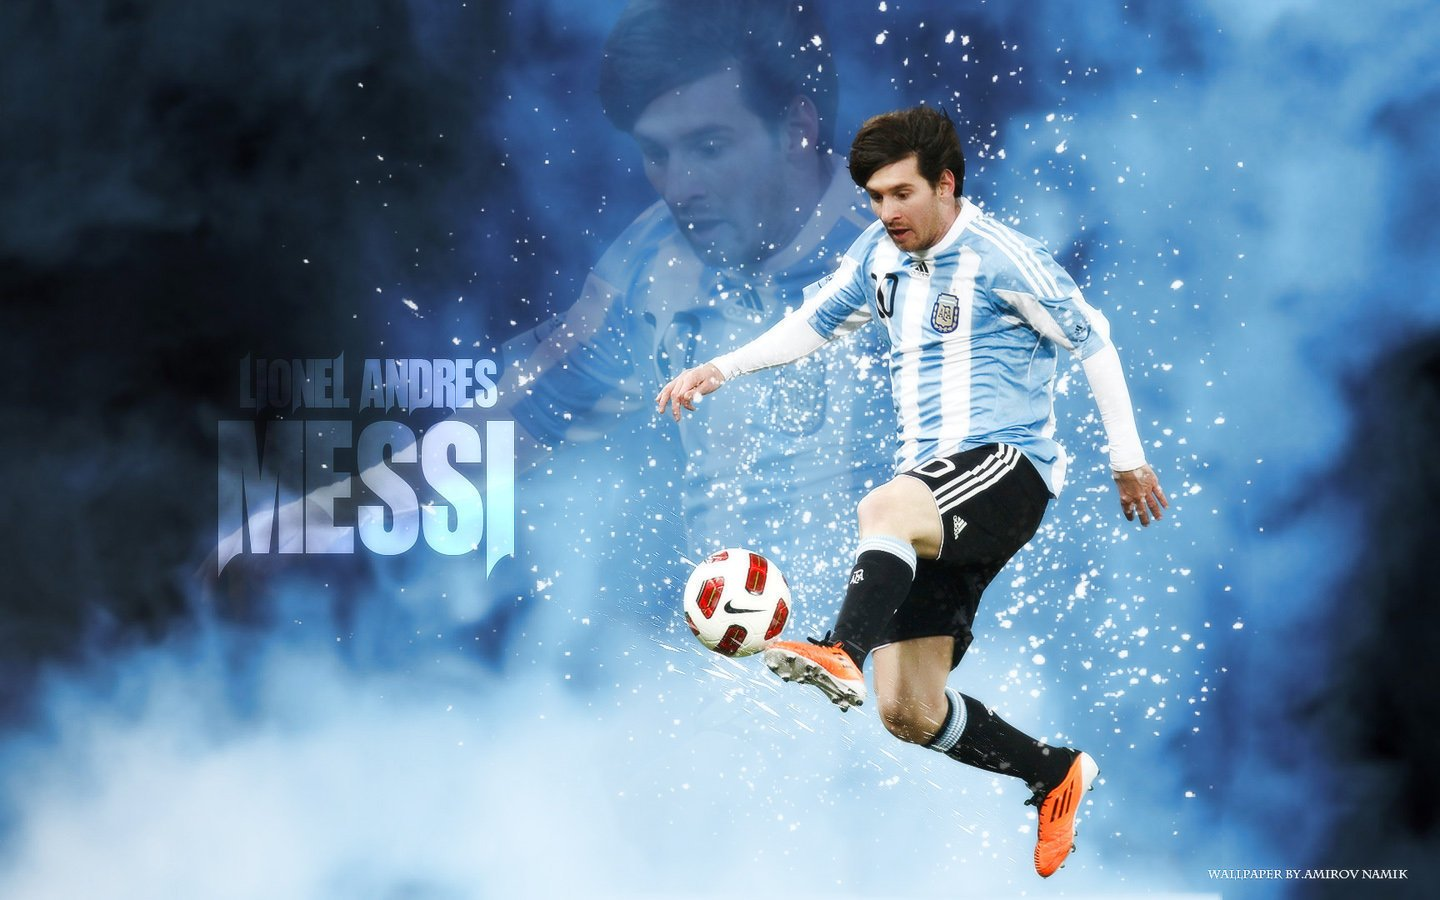 Argentina Lionel Messi Soccer Politics The Politics of Football 1440x900